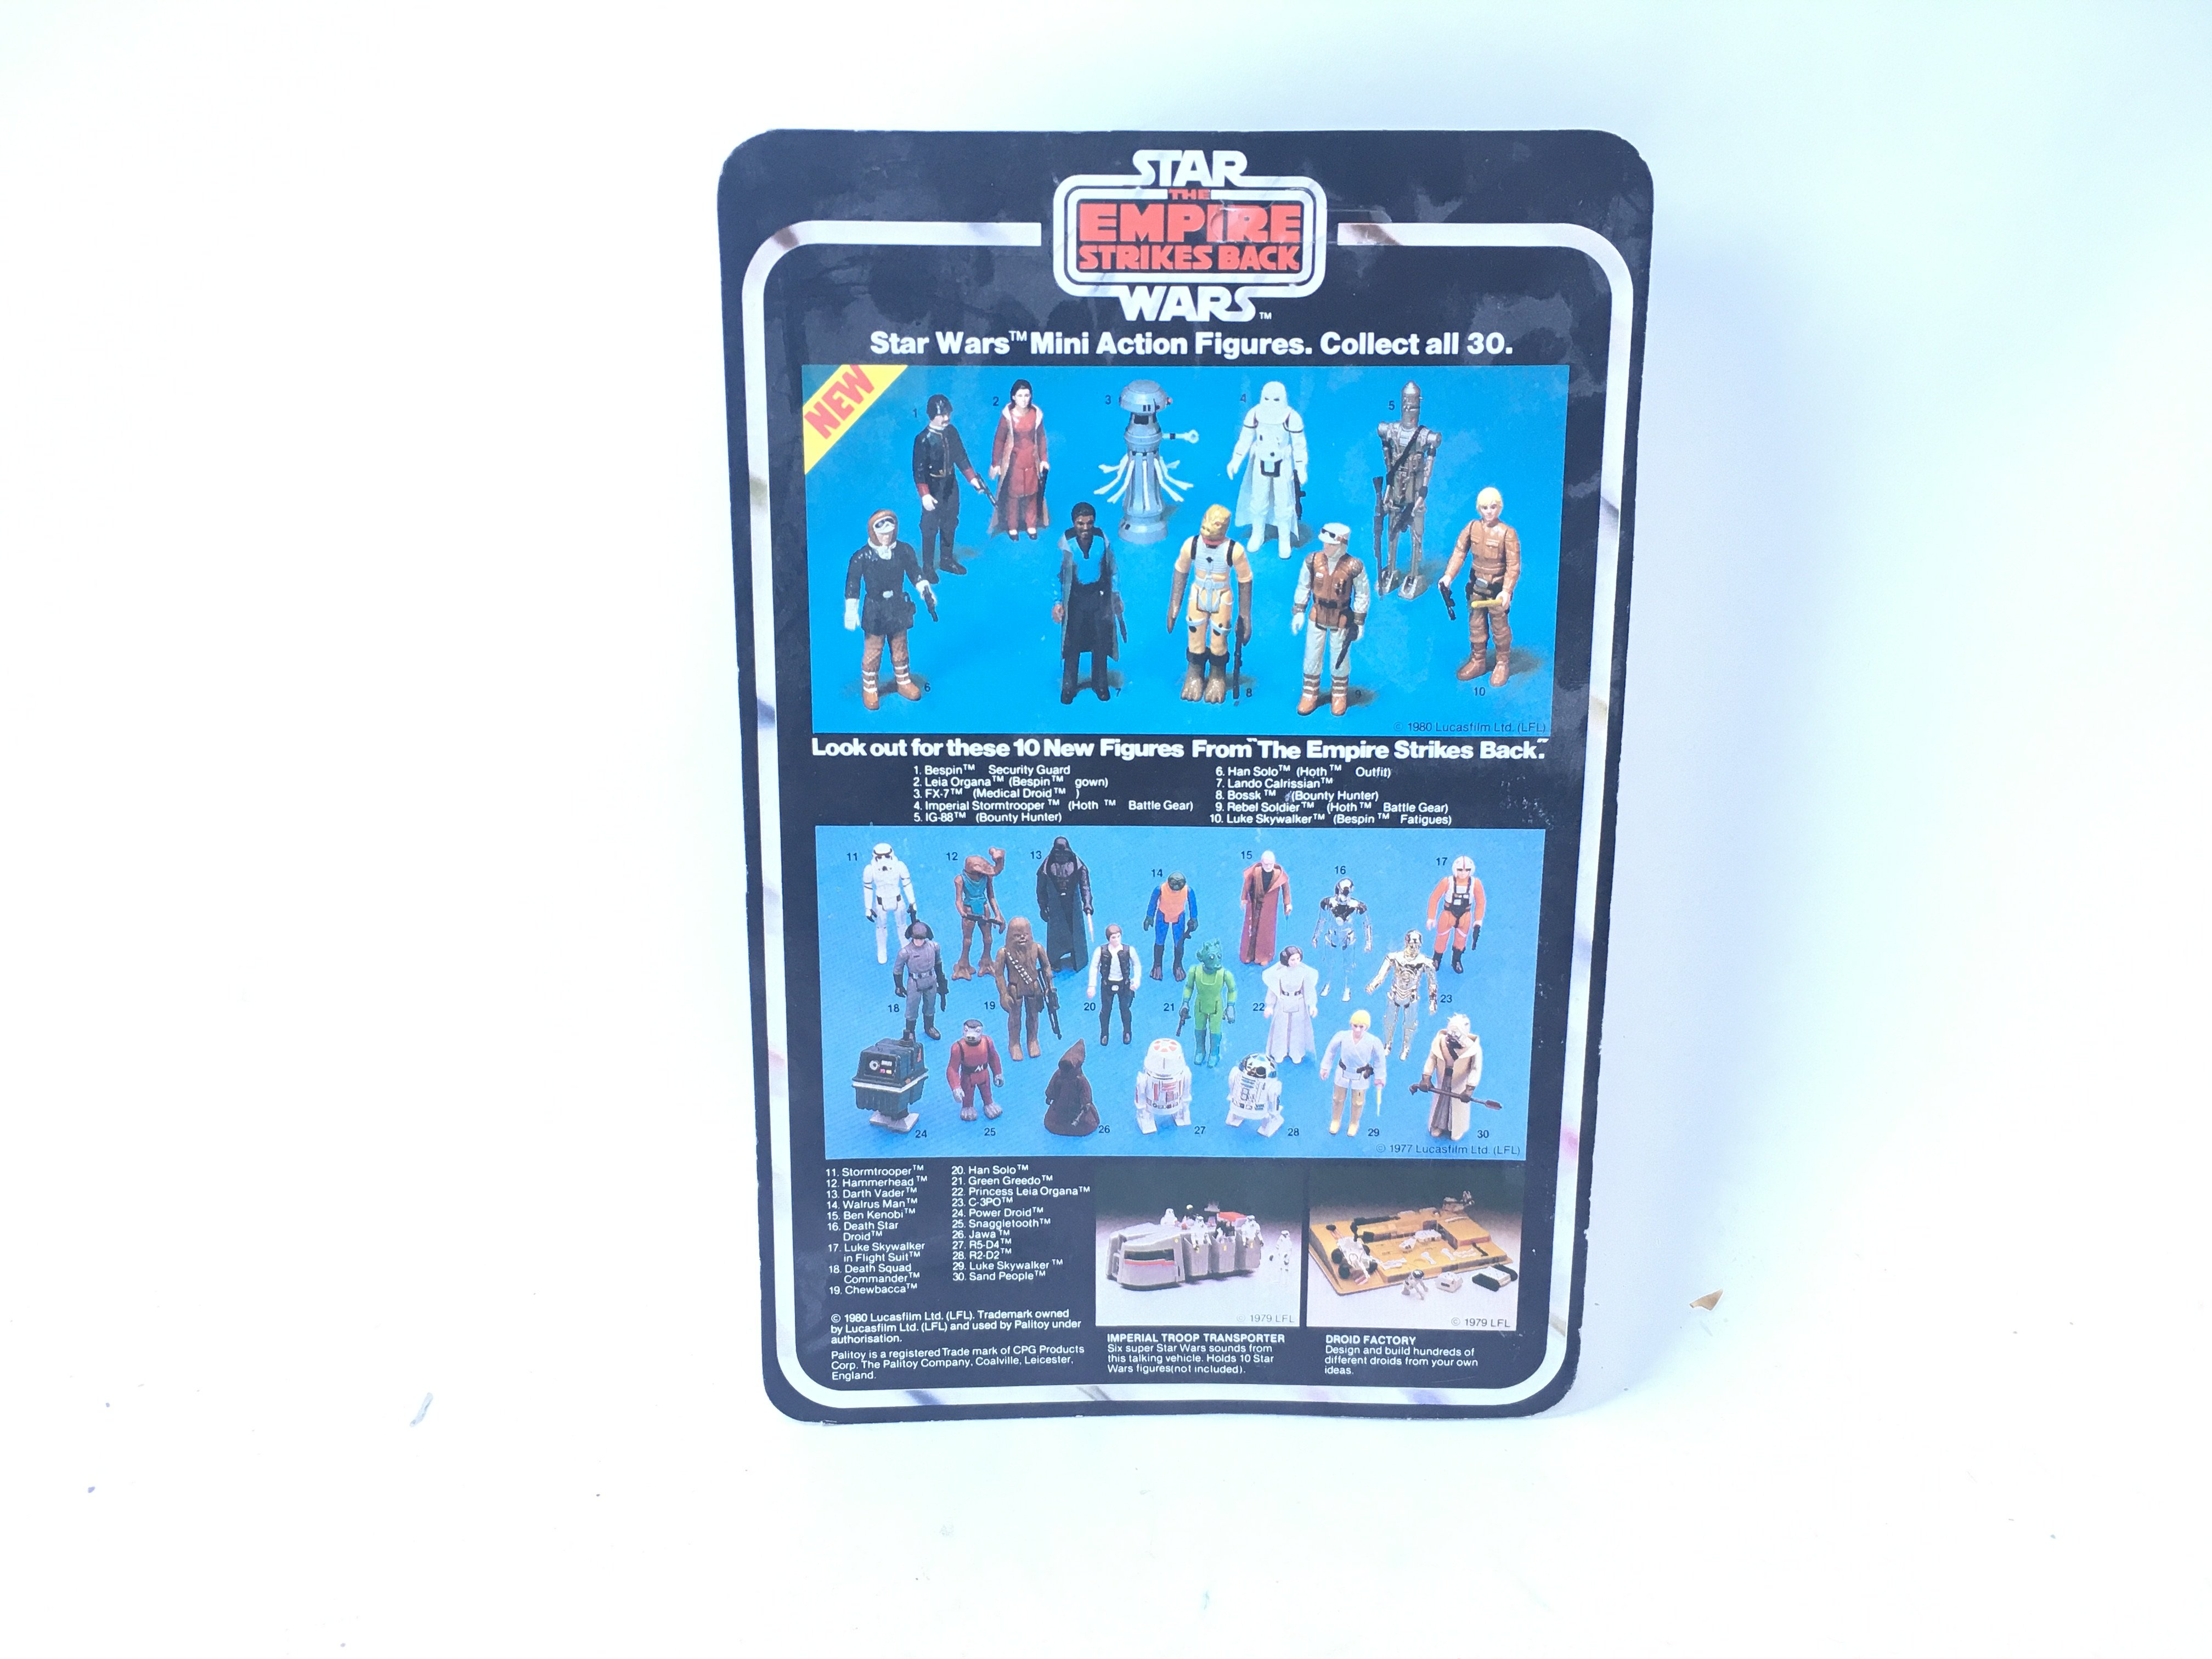 A Vintage Star Wars Empire Stokes Back Carded Han Solo (Hoth) carded. - Image 2 of 2